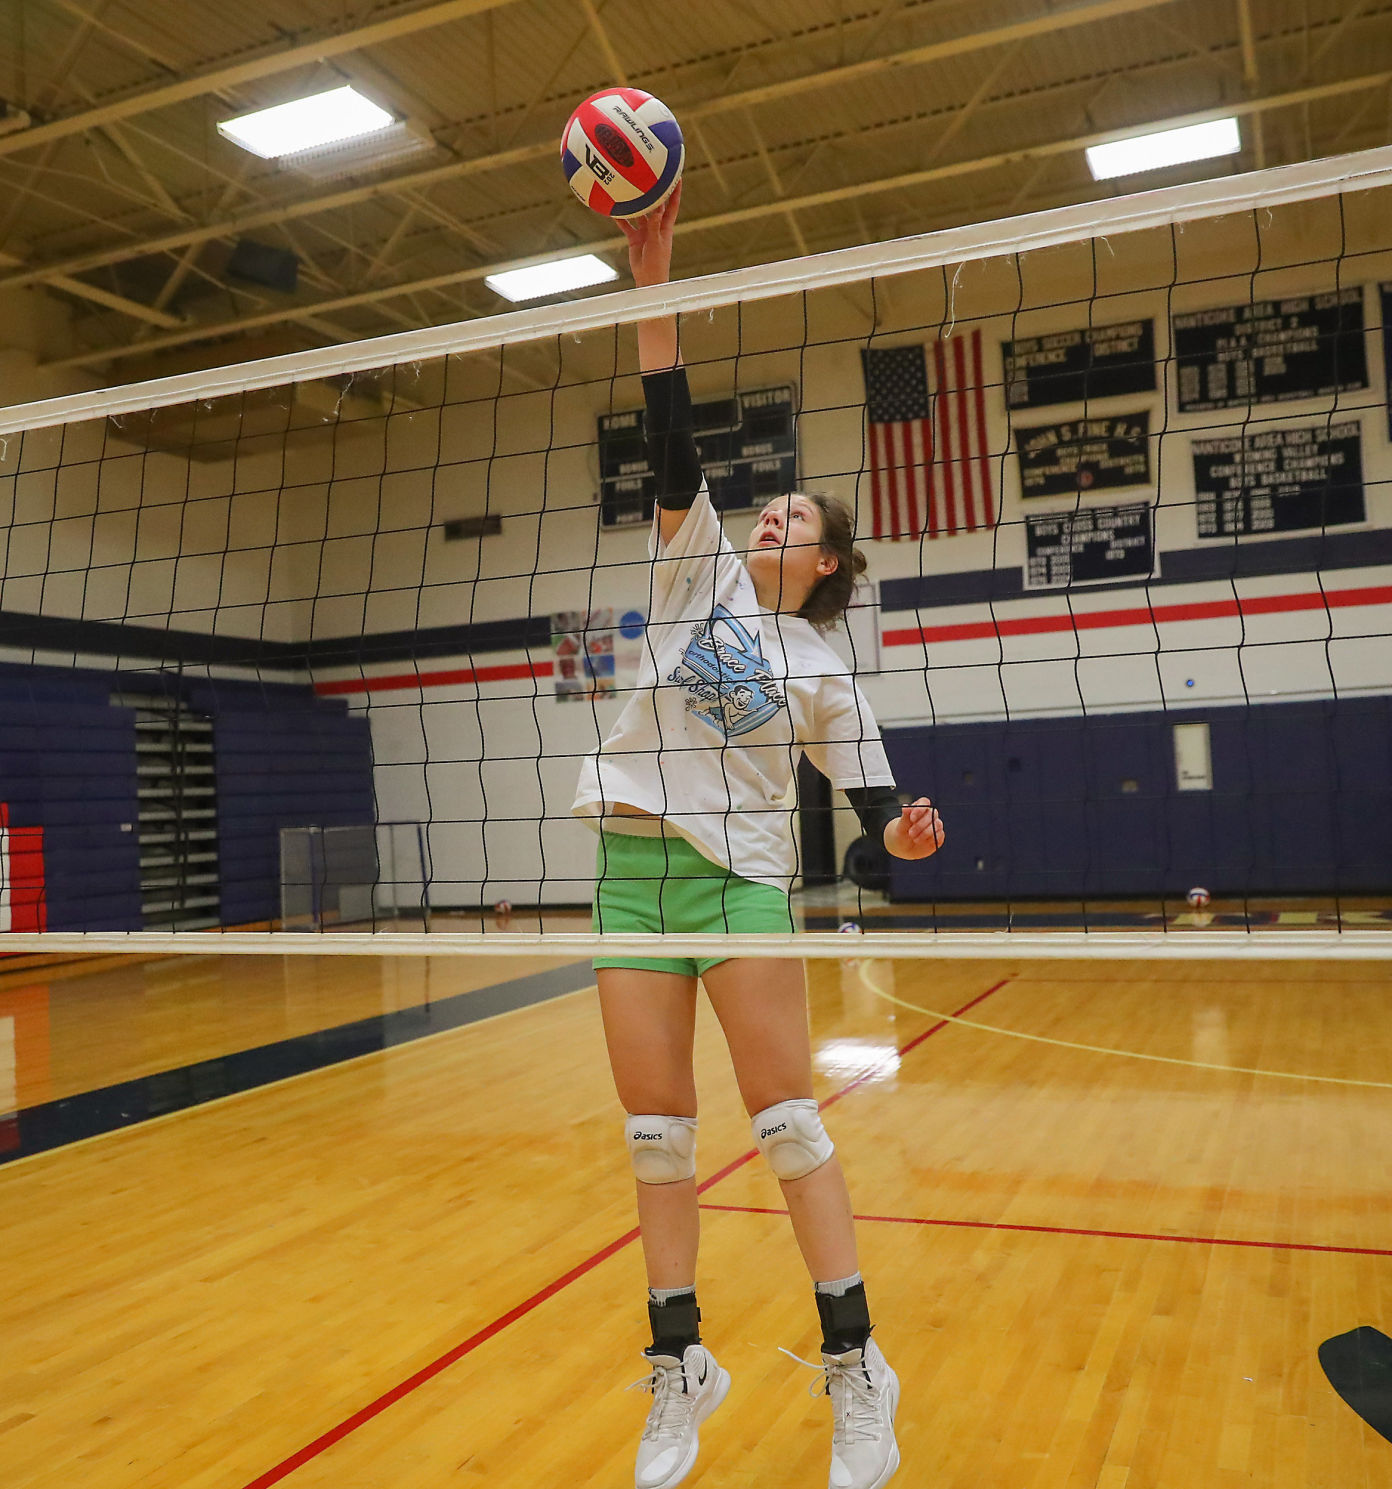 GIRLS HS VOLLEYBALL: Nanticoke Area Volleyball Practice